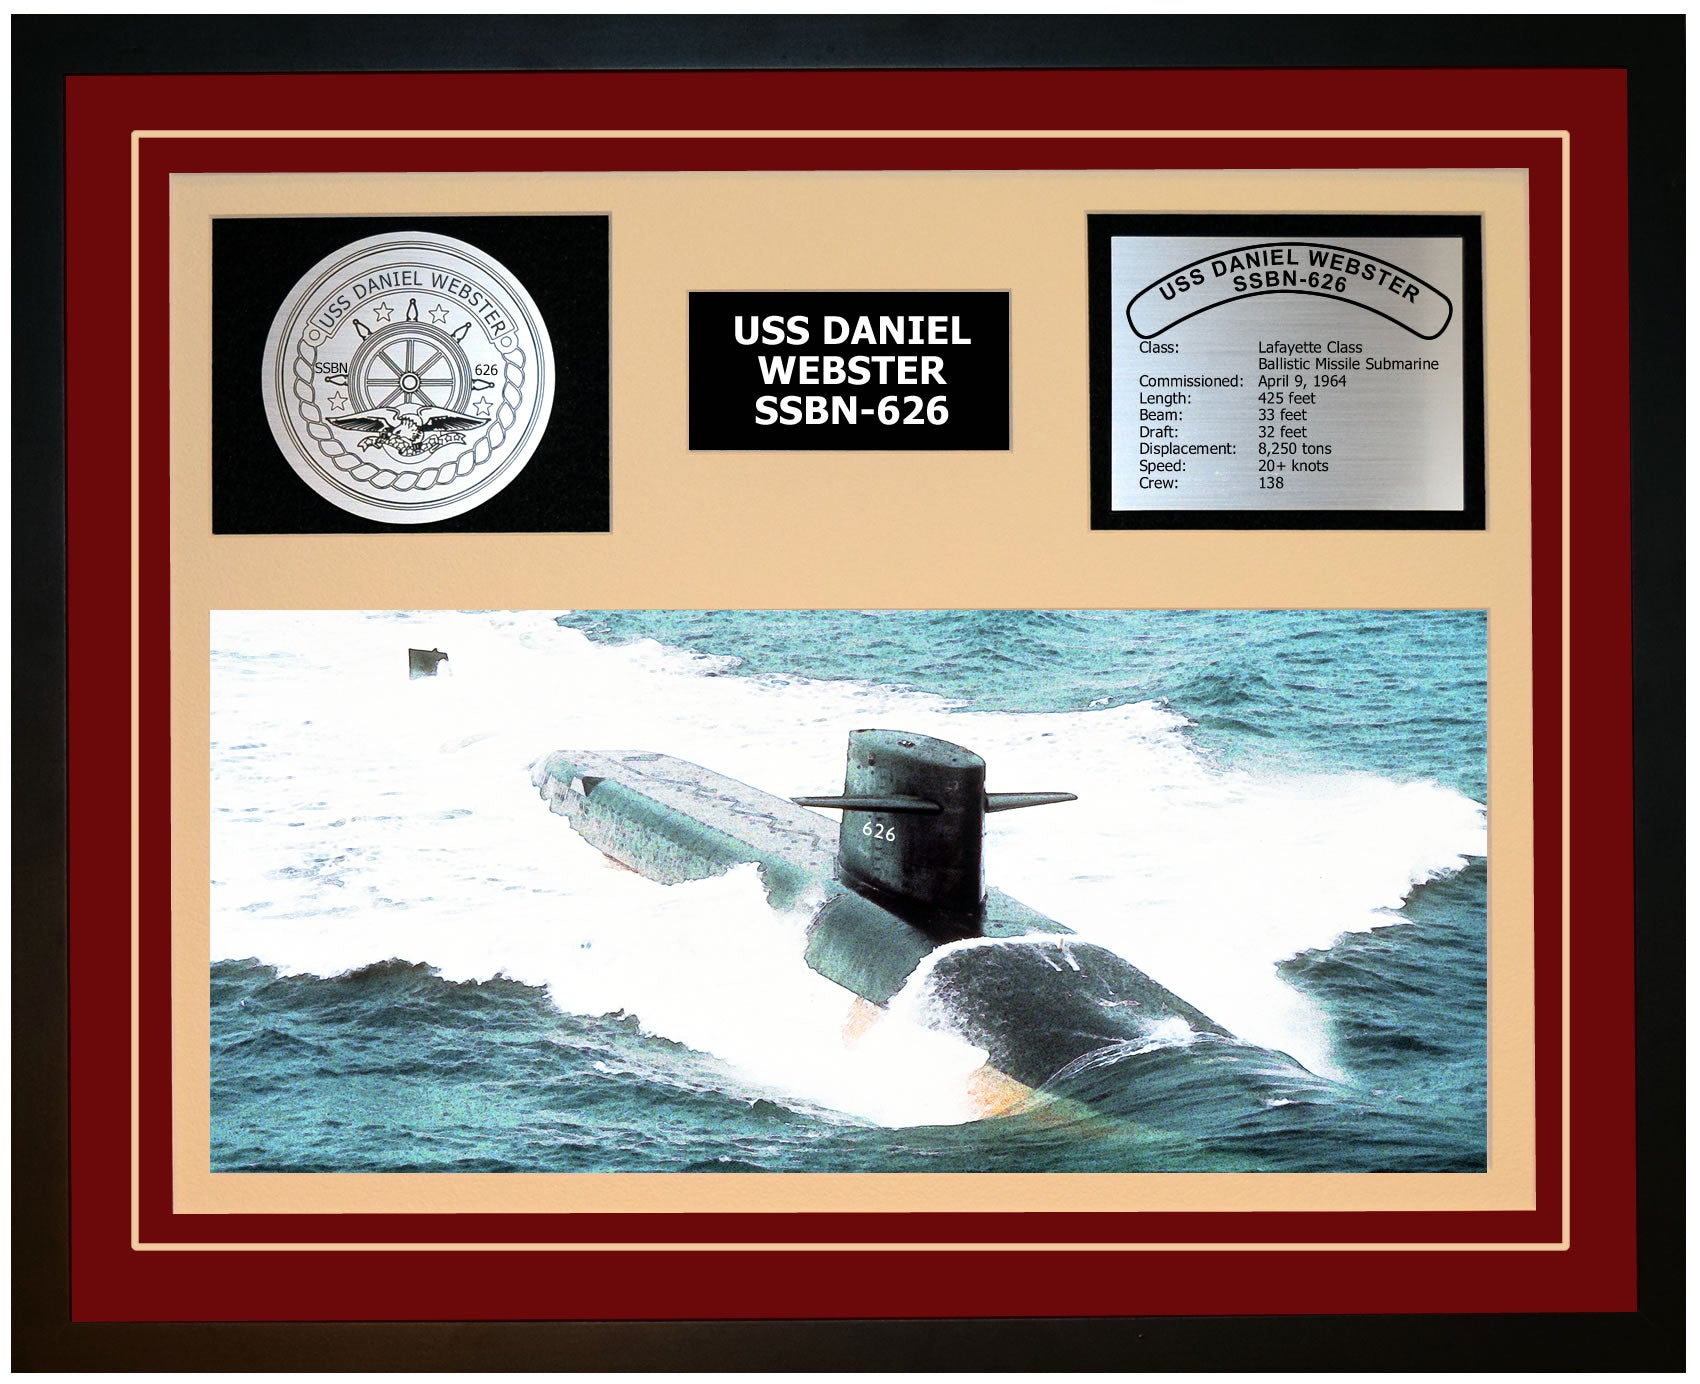 USS DANIEL WEBSTER SSBN-626 Framed Navy Ship Display Burgundy